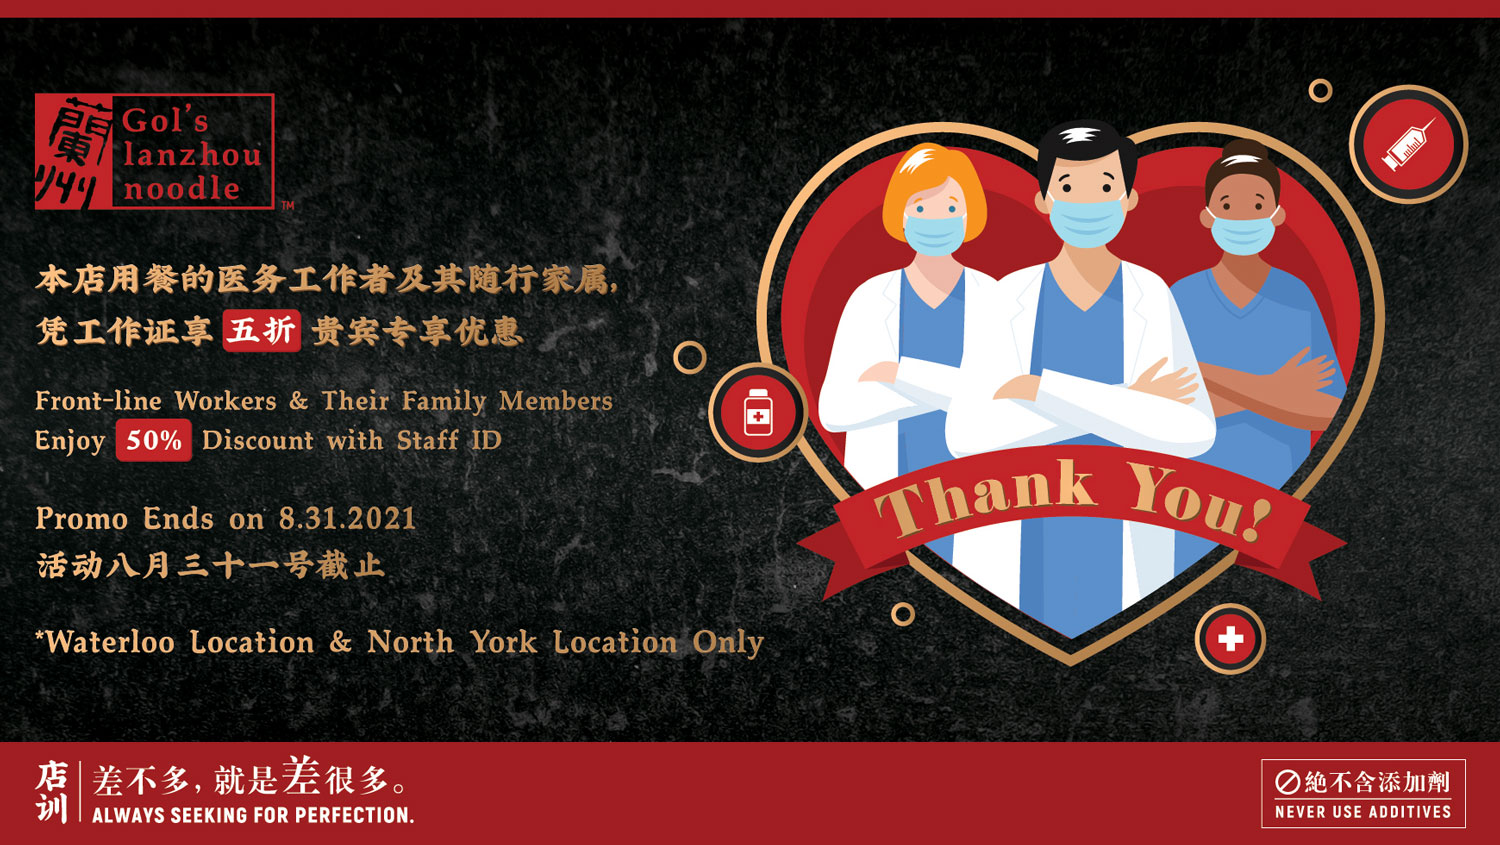 Front-line Workers & Their Family Members Enjoy 50% Discount with Staff ID (Ends on 8.31.2021)